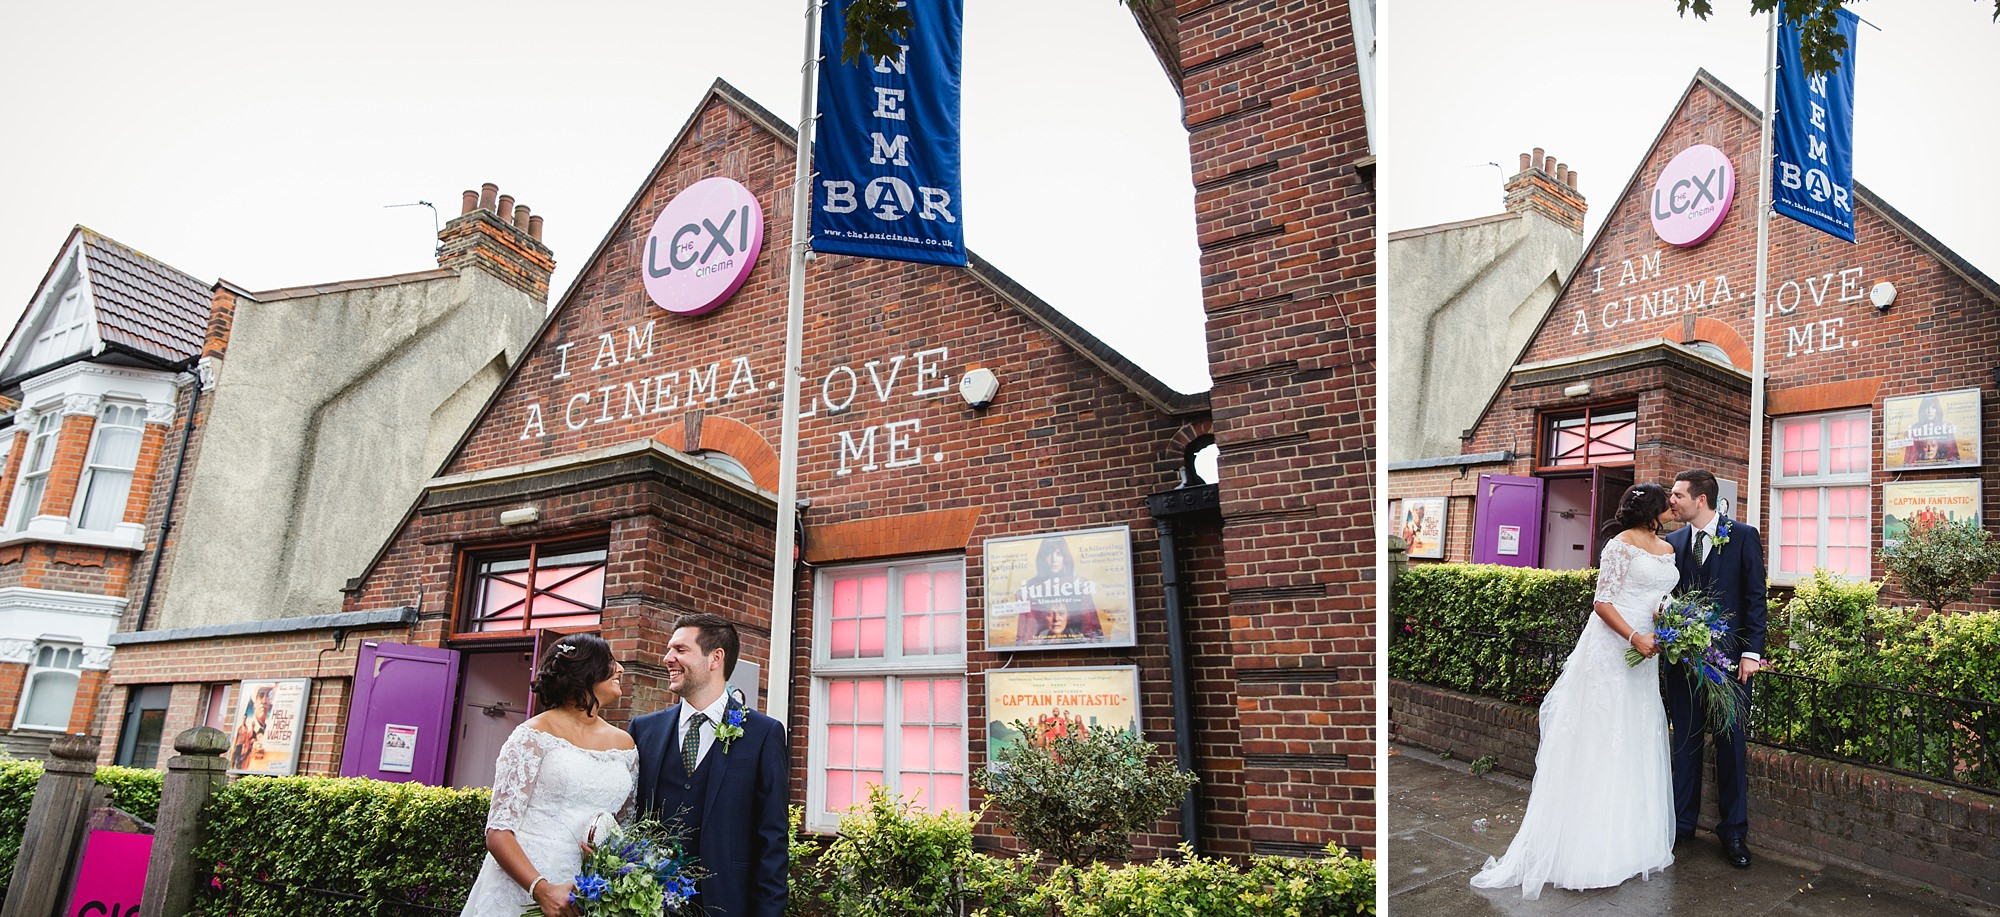 Paradise by way of Kensal Green wedding bride and groom at lexi cinema